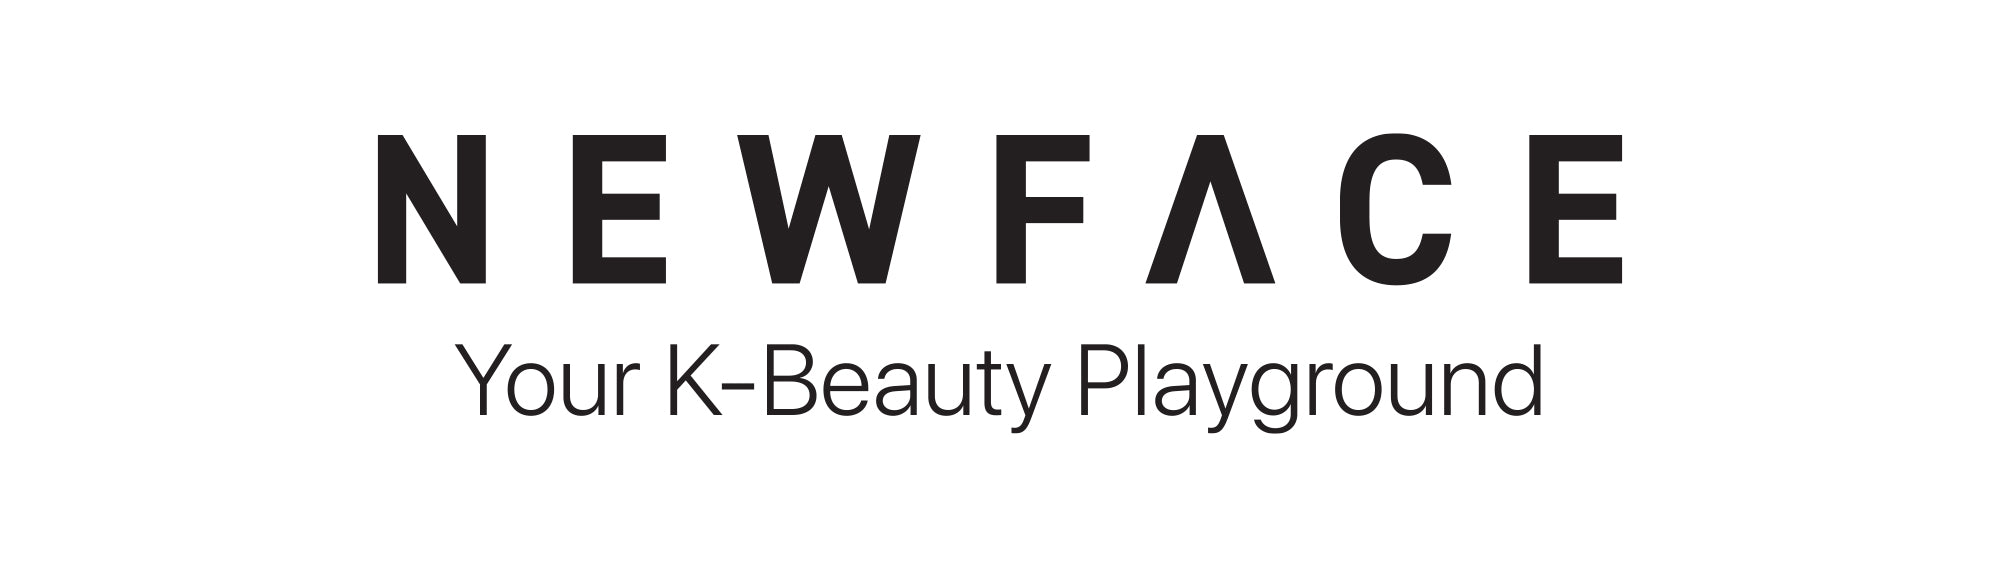 New face you K-Beauty Playground